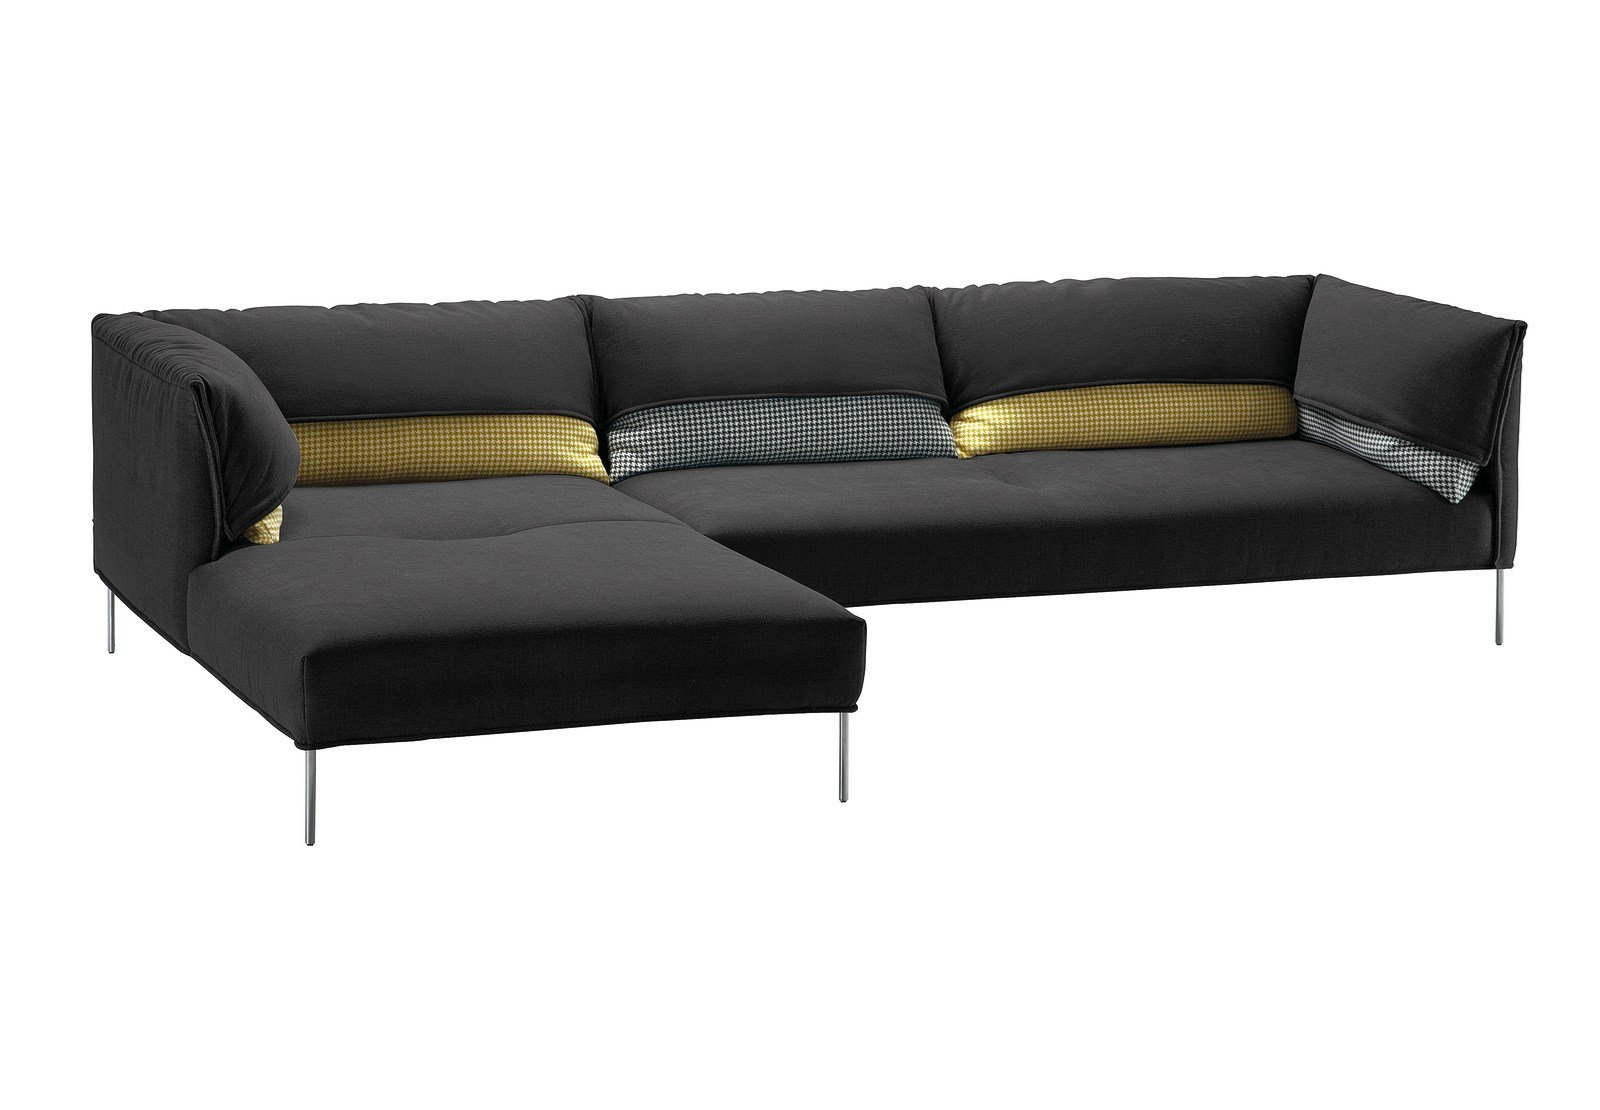 couch bezug sofa bezug ecksofa bezug sofa homeandgarden ewald schillig domino ecksofa sofa 2. Black Bedroom Furniture Sets. Home Design Ideas